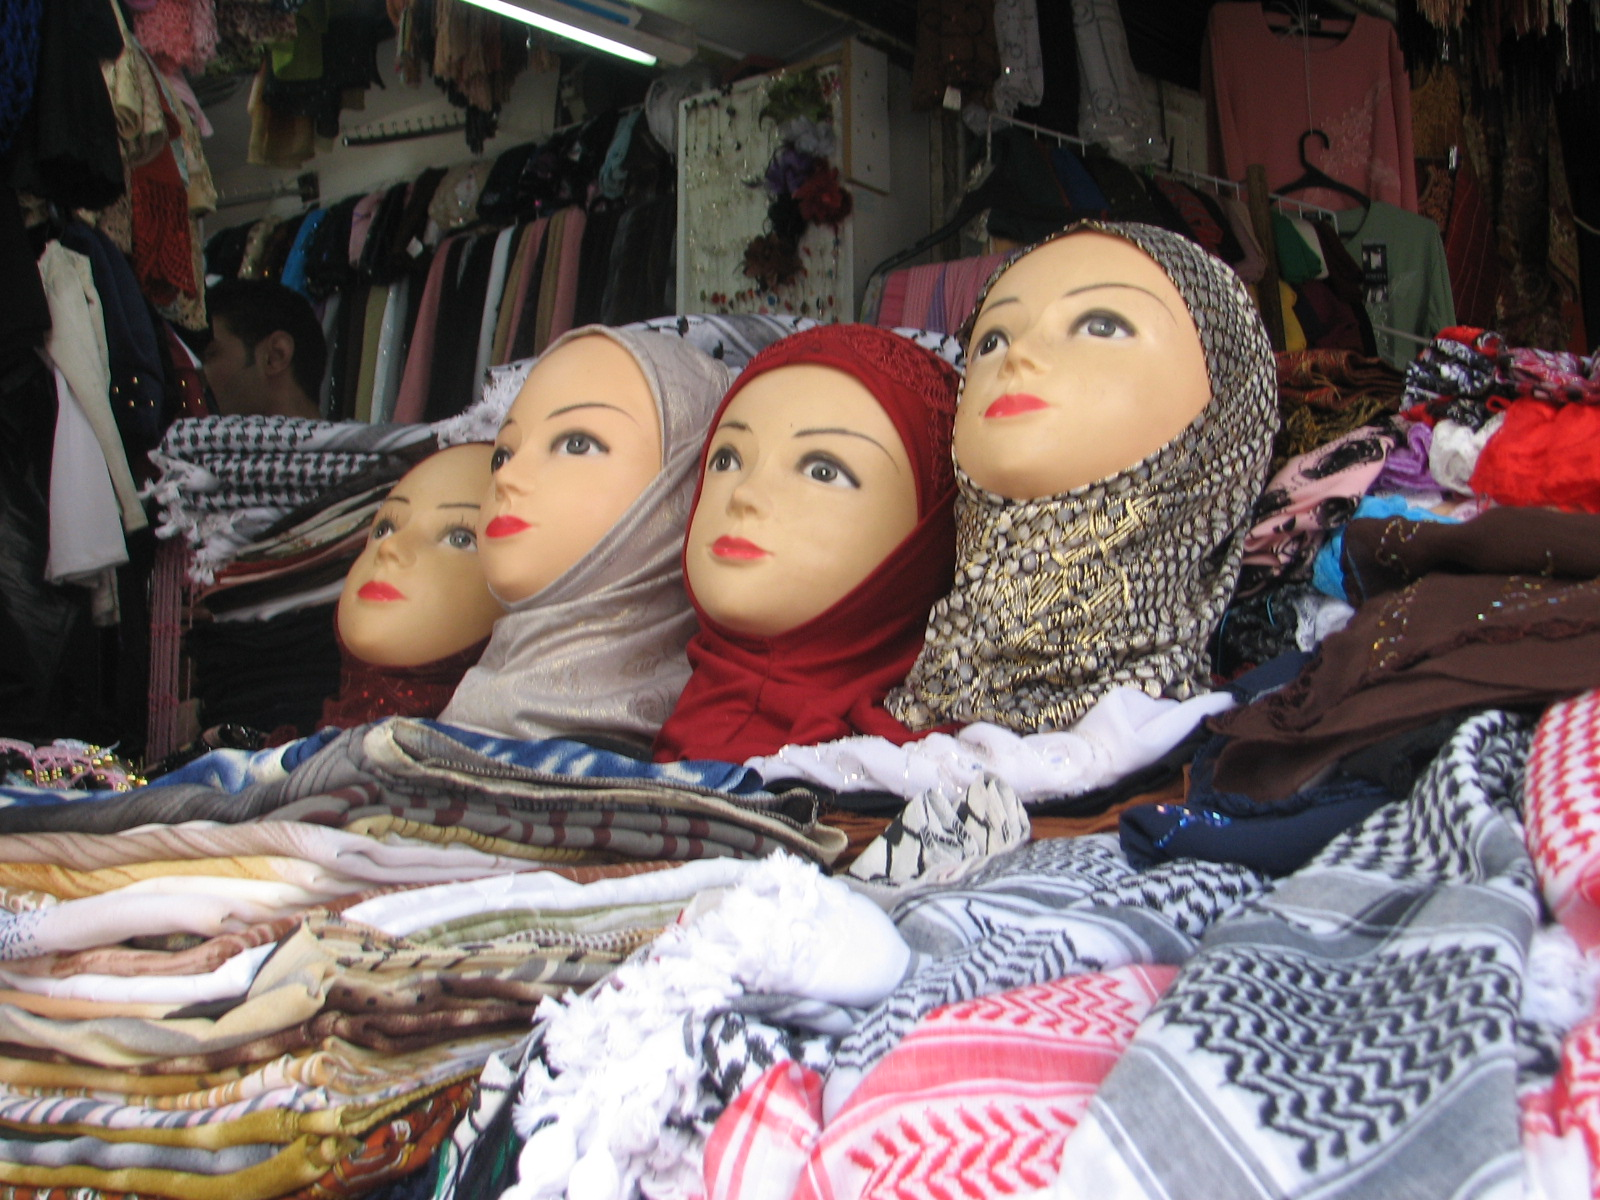 The ECJ's ruling on the hijab in the workplace: Implications for Germany